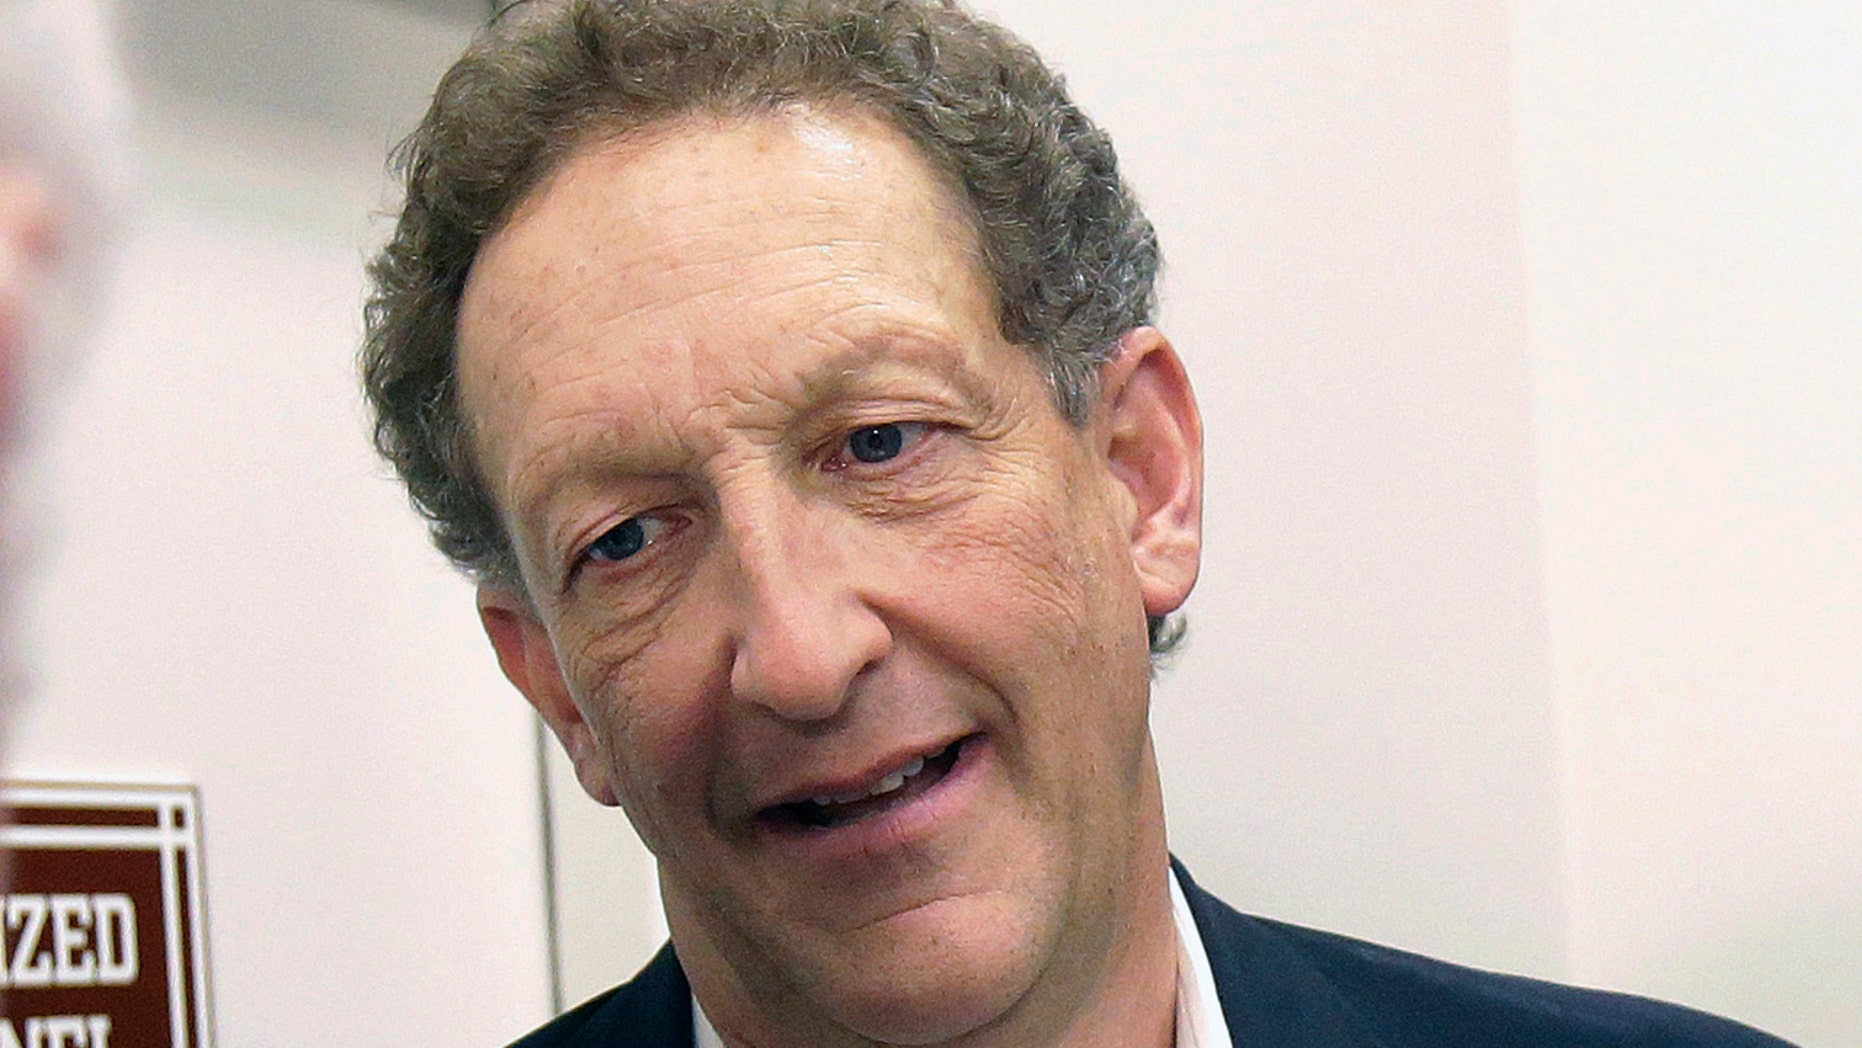 FILE - In this Monday, Oct. 5, 2015 file photo, San Francisco Giants president and CEO Larry Baer speaks to reporters after a news conference in San Francisco.